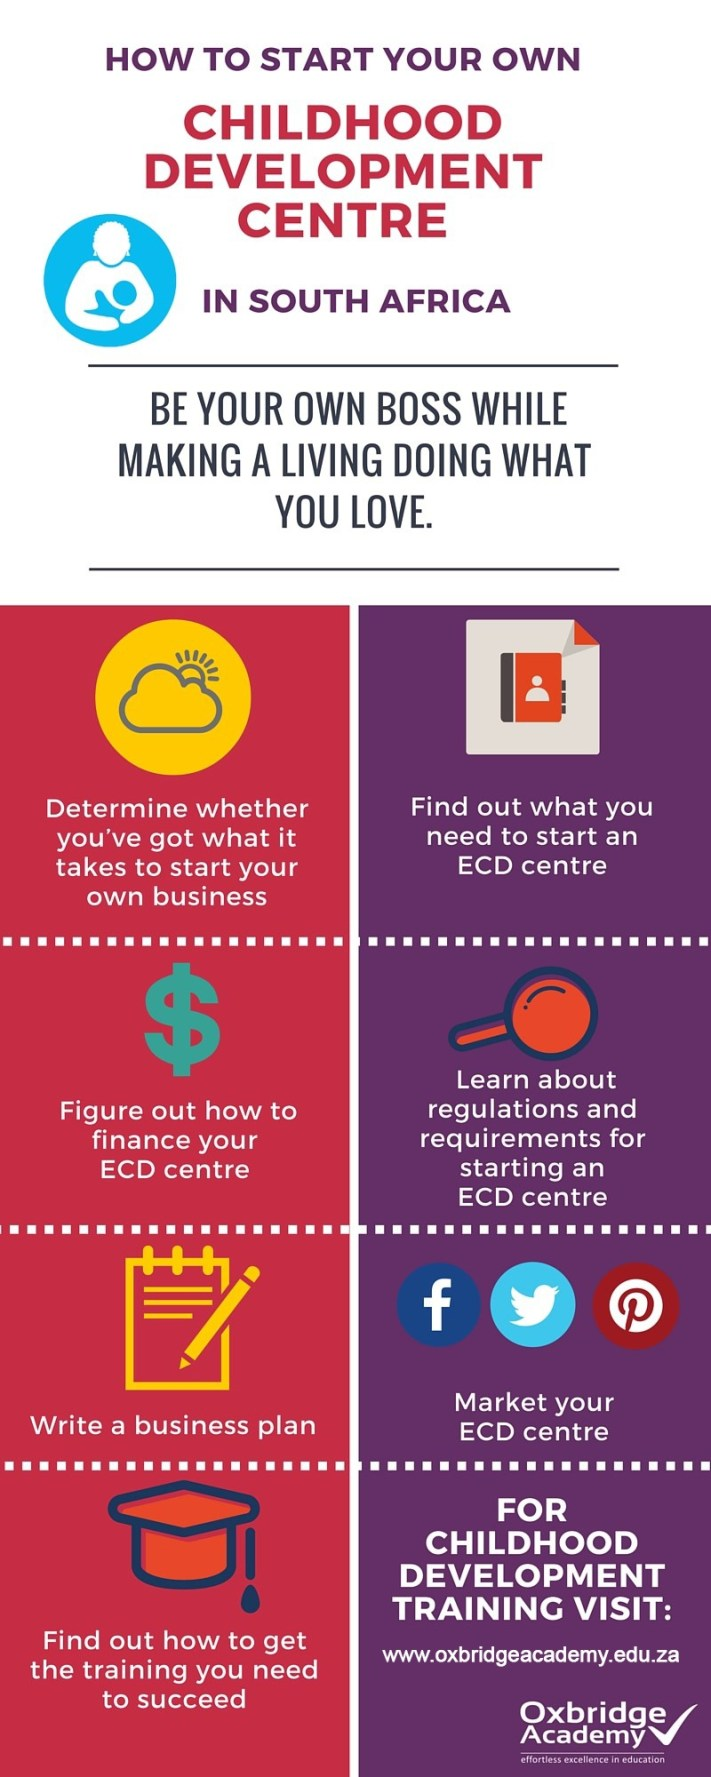 How to Start Your Own Childhood Development Centre - Infographic